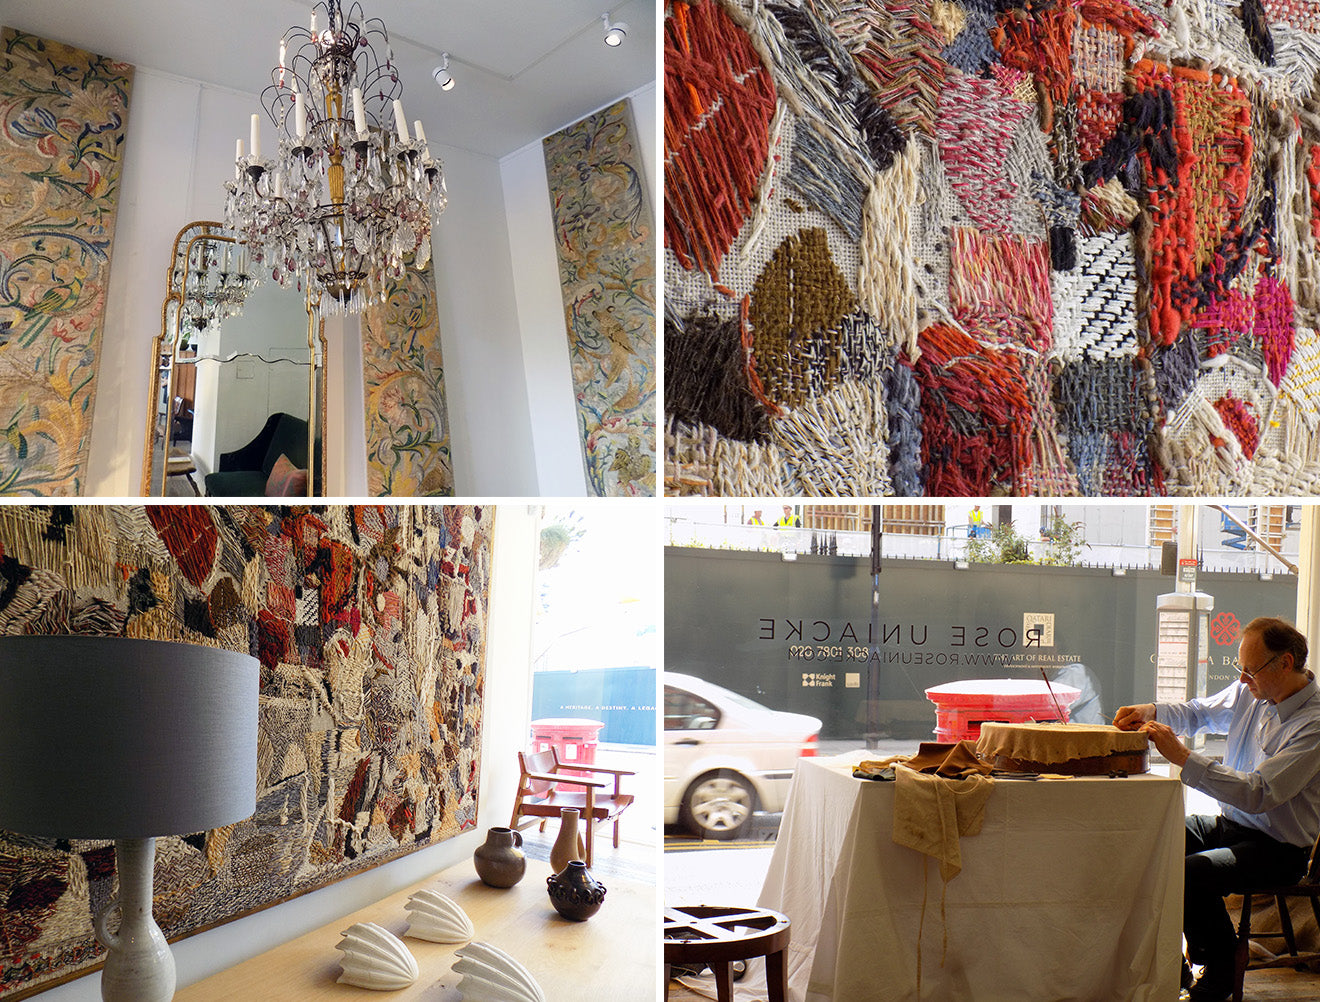 Rose Uniacke london showroom displays for London Craft Week